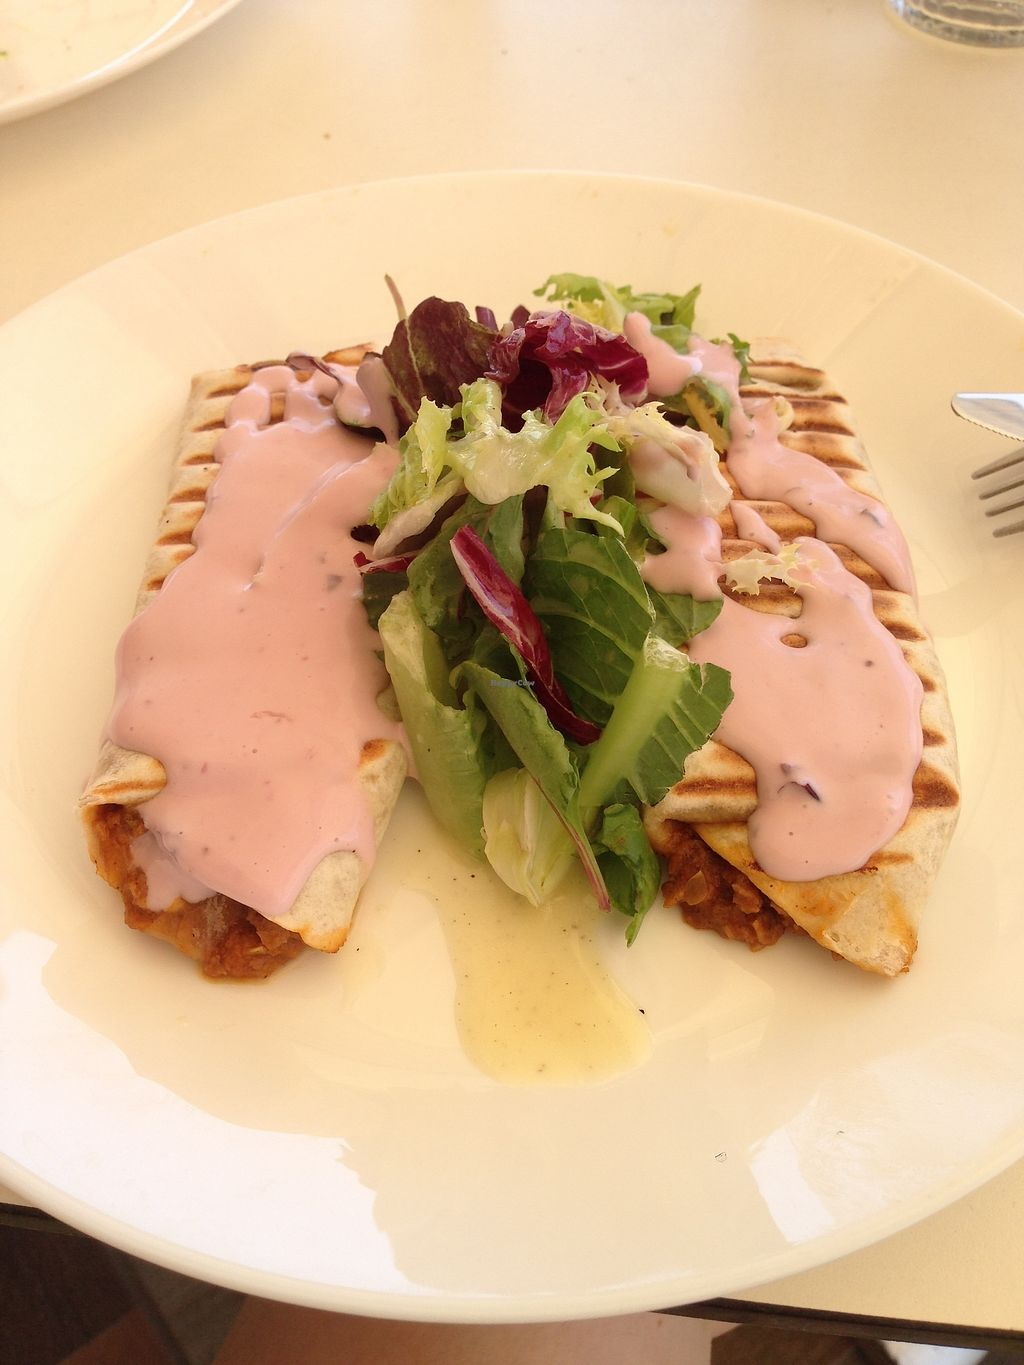 """Photo of Green Tara  by <a href=""""/members/profile/NinaH%C3%B6fmann"""">NinaHöfmann</a> <br/>Tacos with Grape Dressing (made using local grapes!) <br/> July 30, 2017  - <a href='/contact/abuse/image/82837/286739'>Report</a>"""